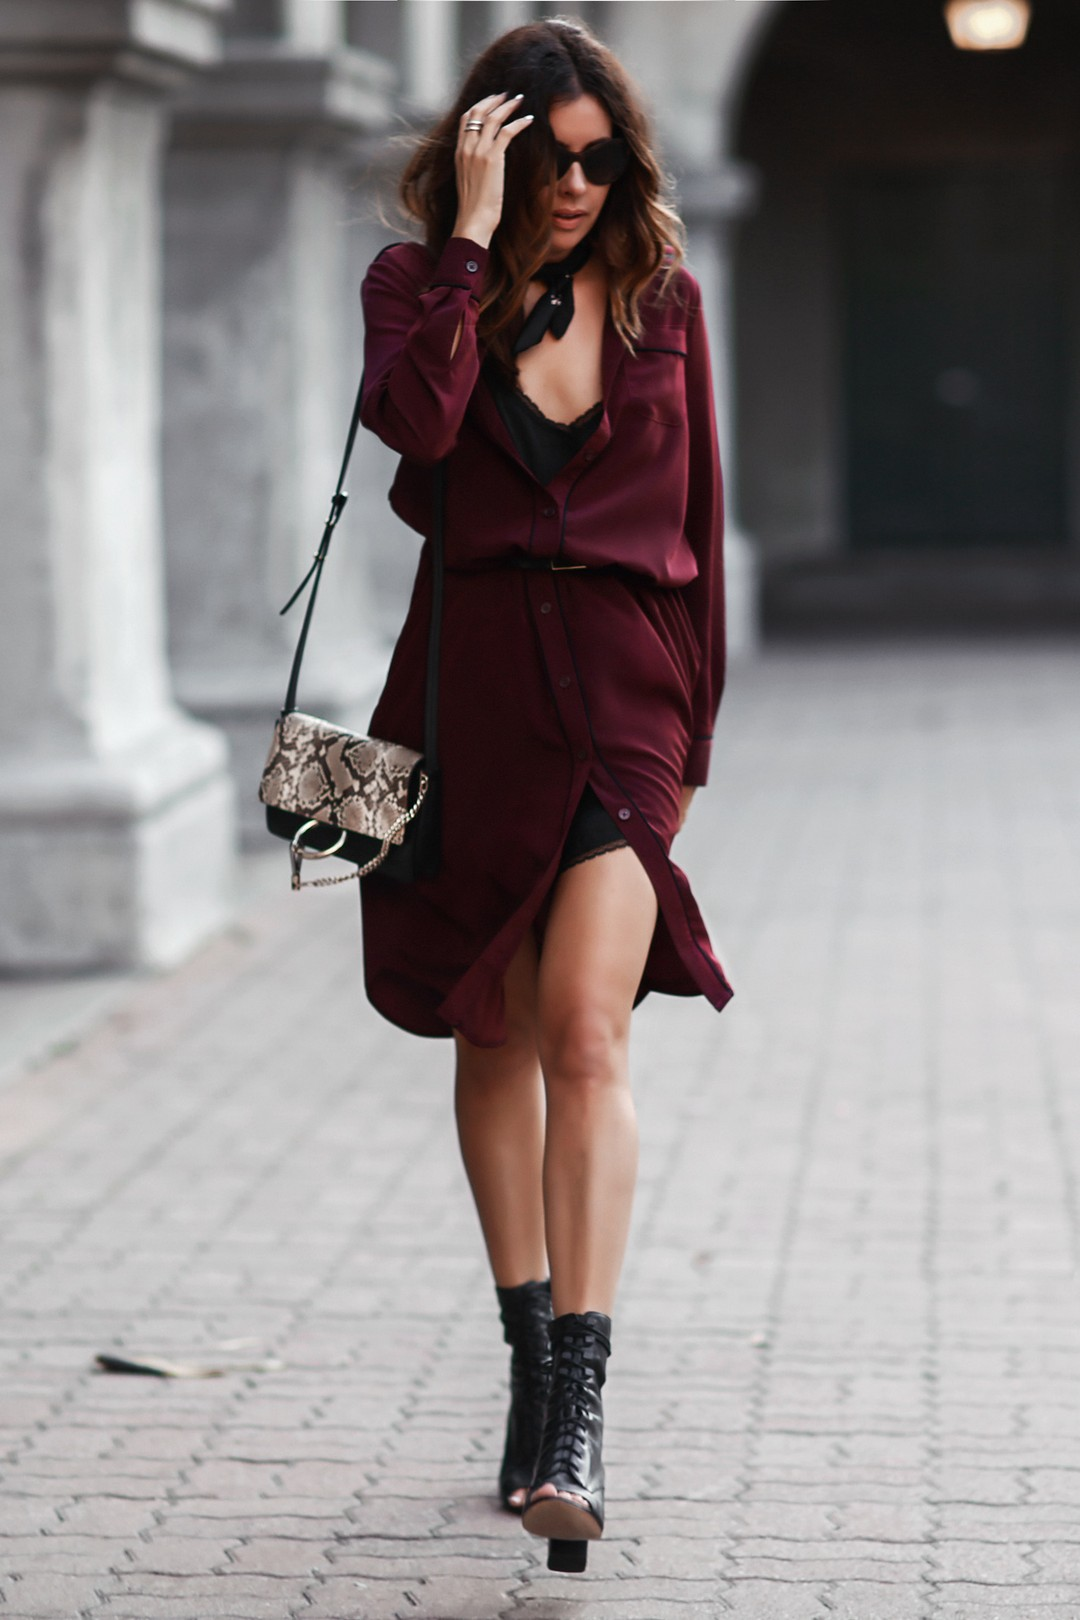 If you're looking for a smart and sophisticated summer style, give the shirt dress trend a go. Erica Hoida demonstrates how to wear a shirt dress, pairing this plum number with a neckerchief and laced summer boots to create an edgy yet elegant style. Dress/Neckerchief: Who What Wear Collection, Shoes: Elizabeth & James, Bag: Chloe.